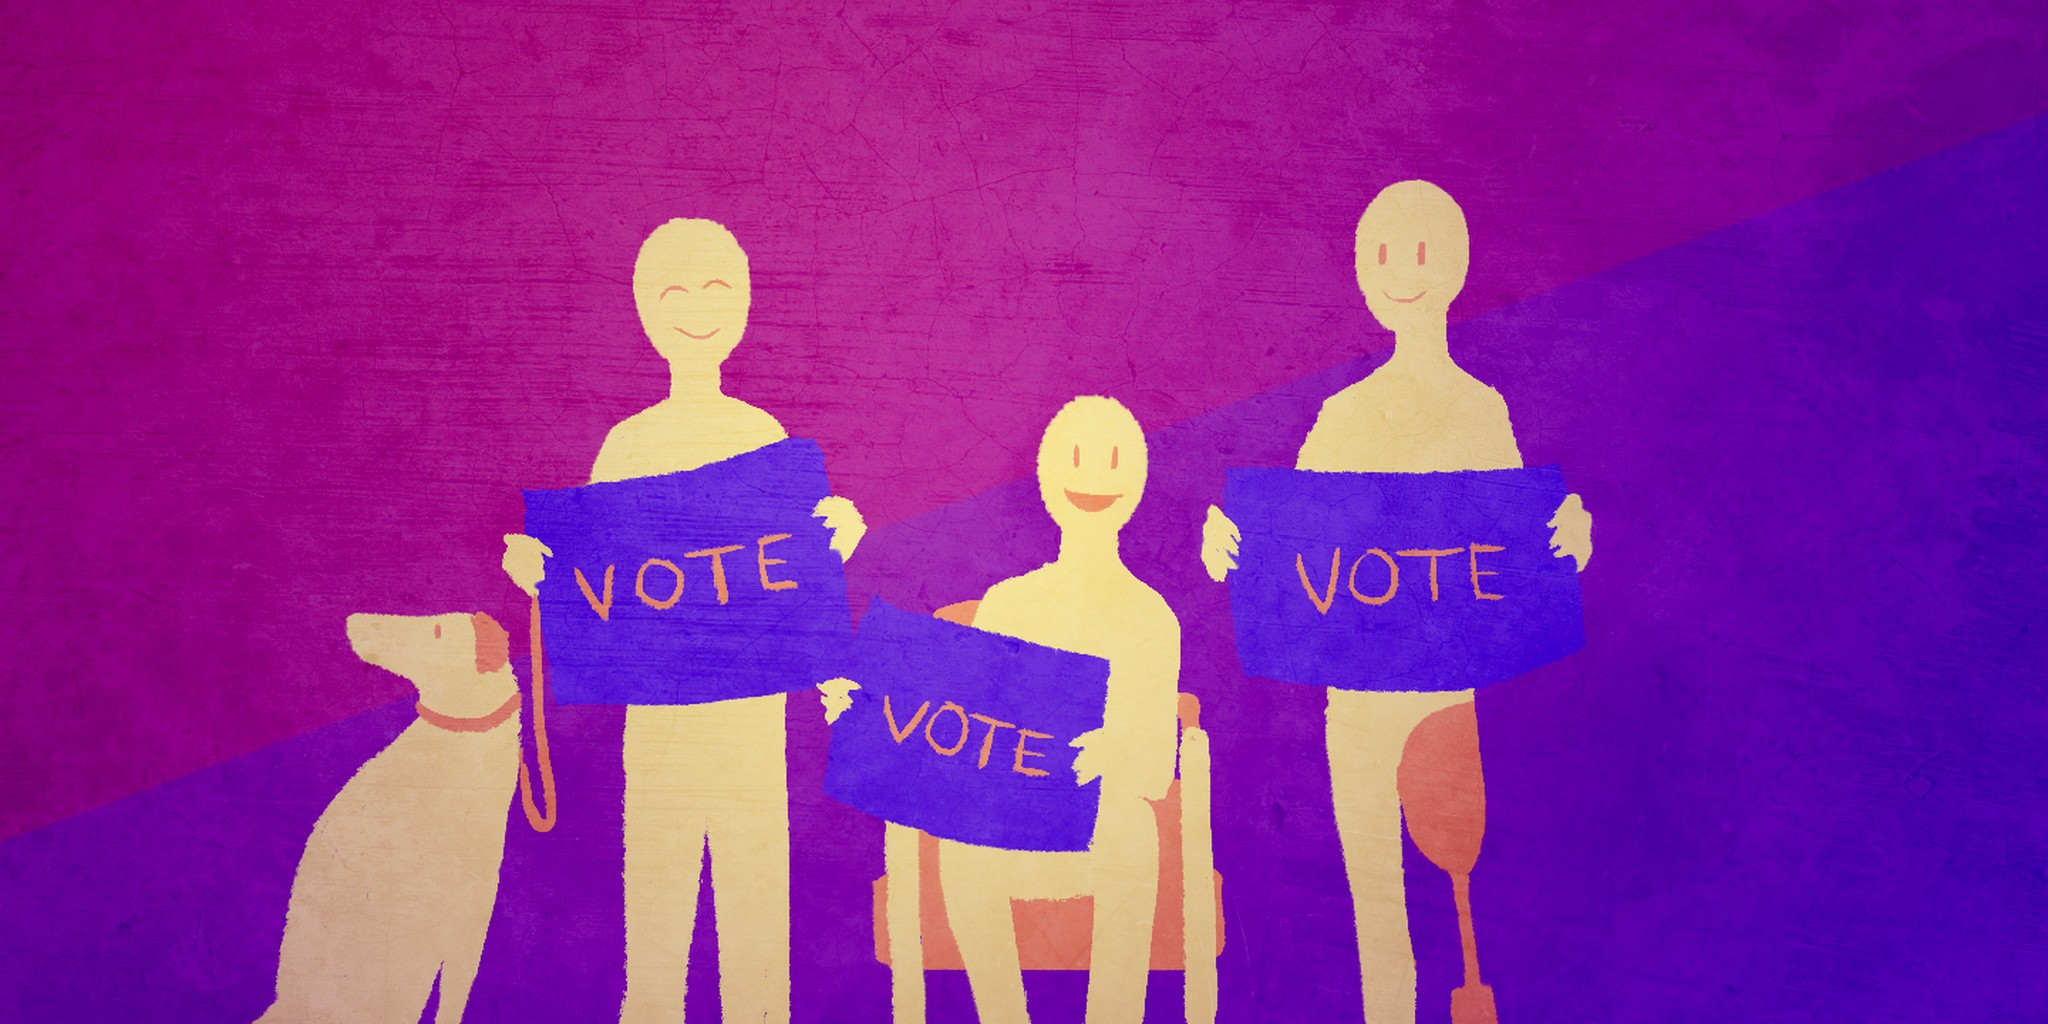 people with various disabilities holding vote sinds